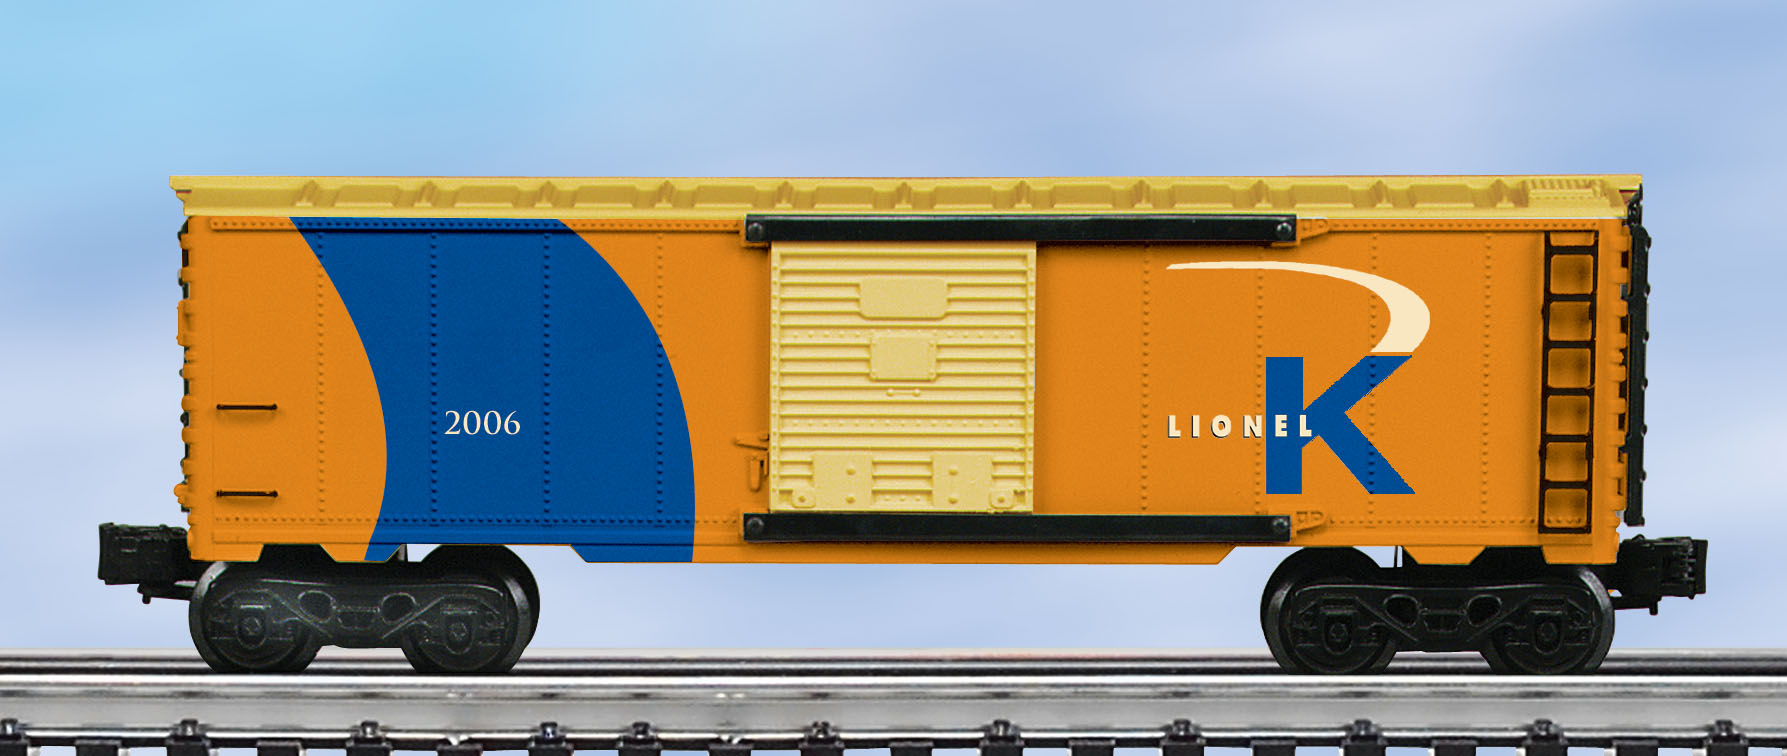 K-Line by Lionel (Launch Celebration) Boxcar image